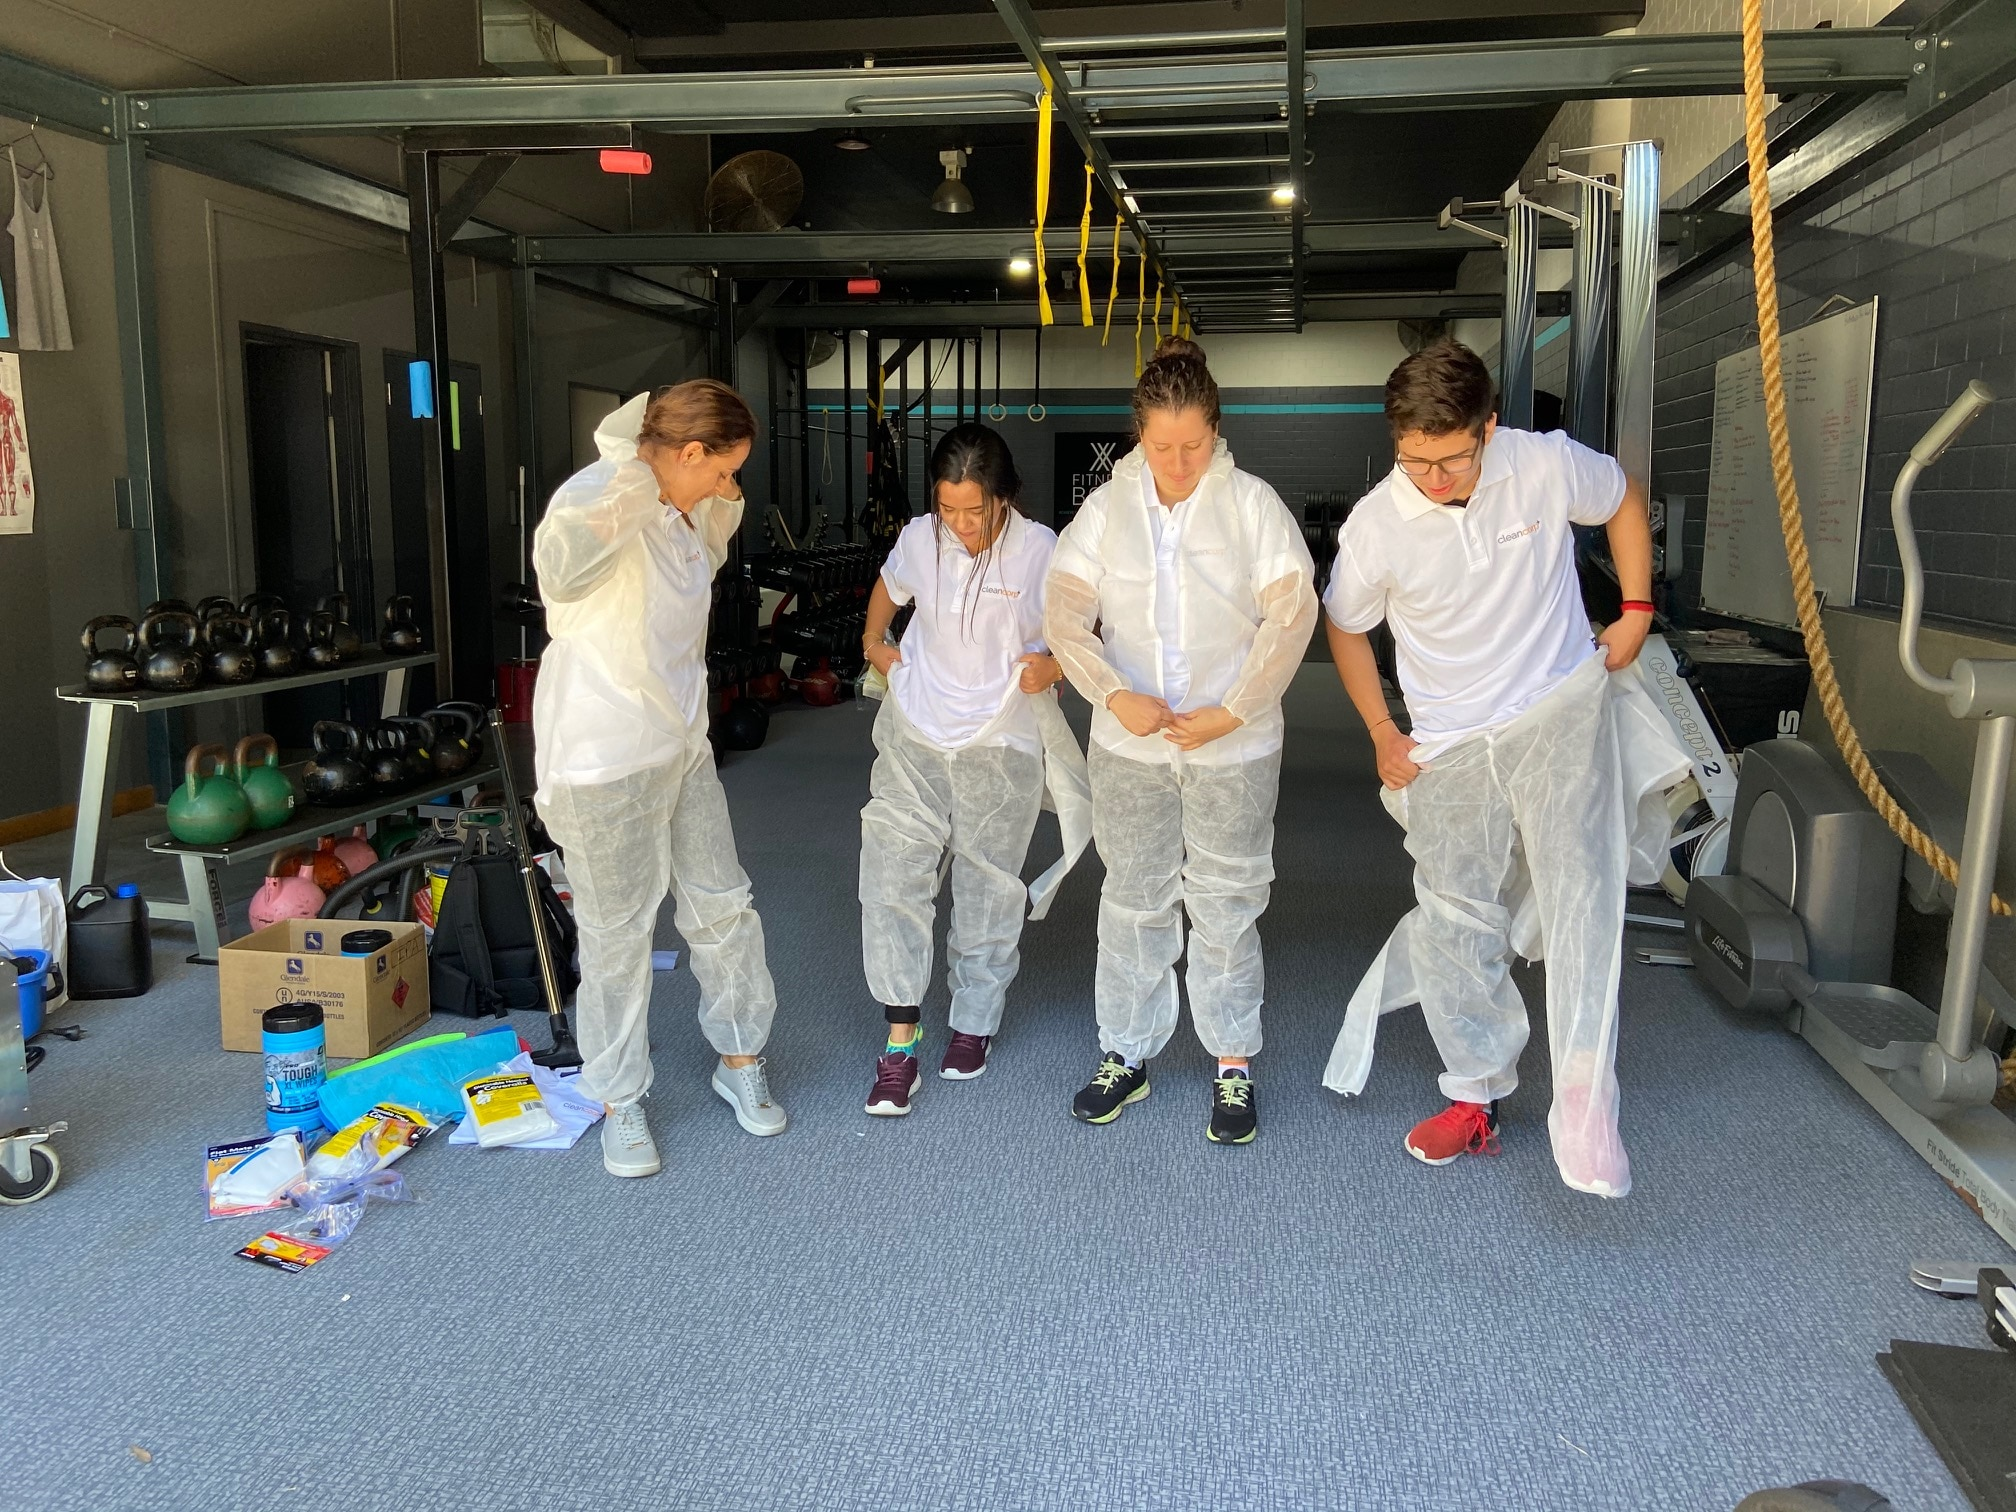 Cleaners are being hired to scrub down surfaces where pathogens might live.